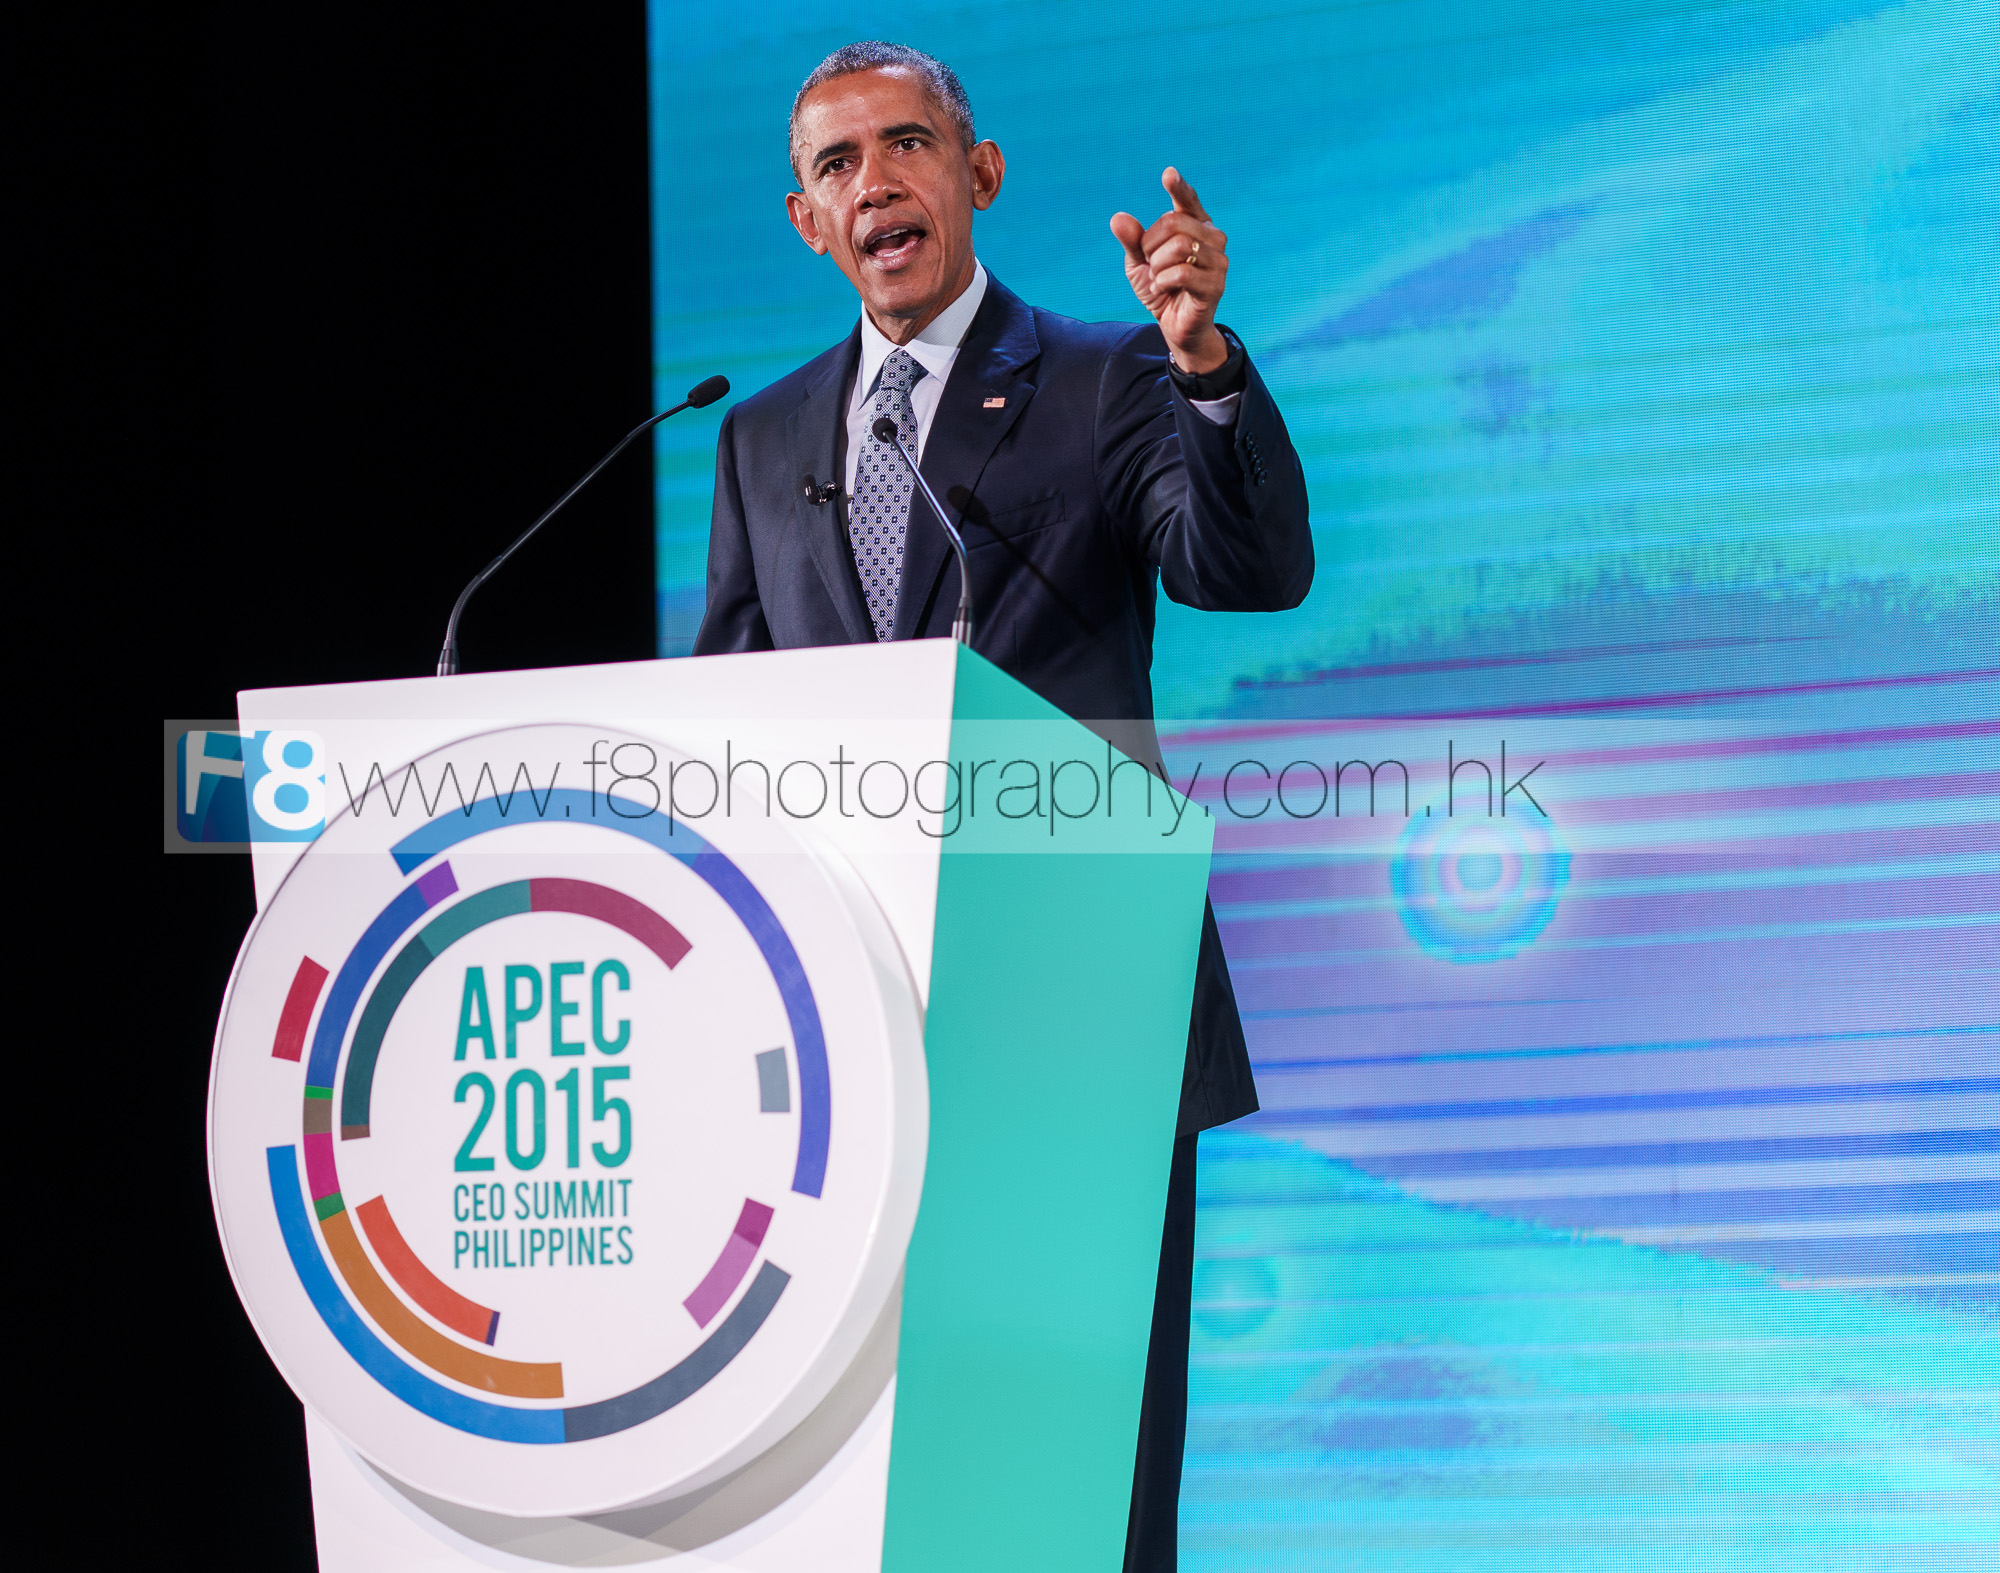 President of the United States, Mr Barack Obama arrives on stage to a standing ovation on the final day of APEC 2015 in Manila, Philippines.